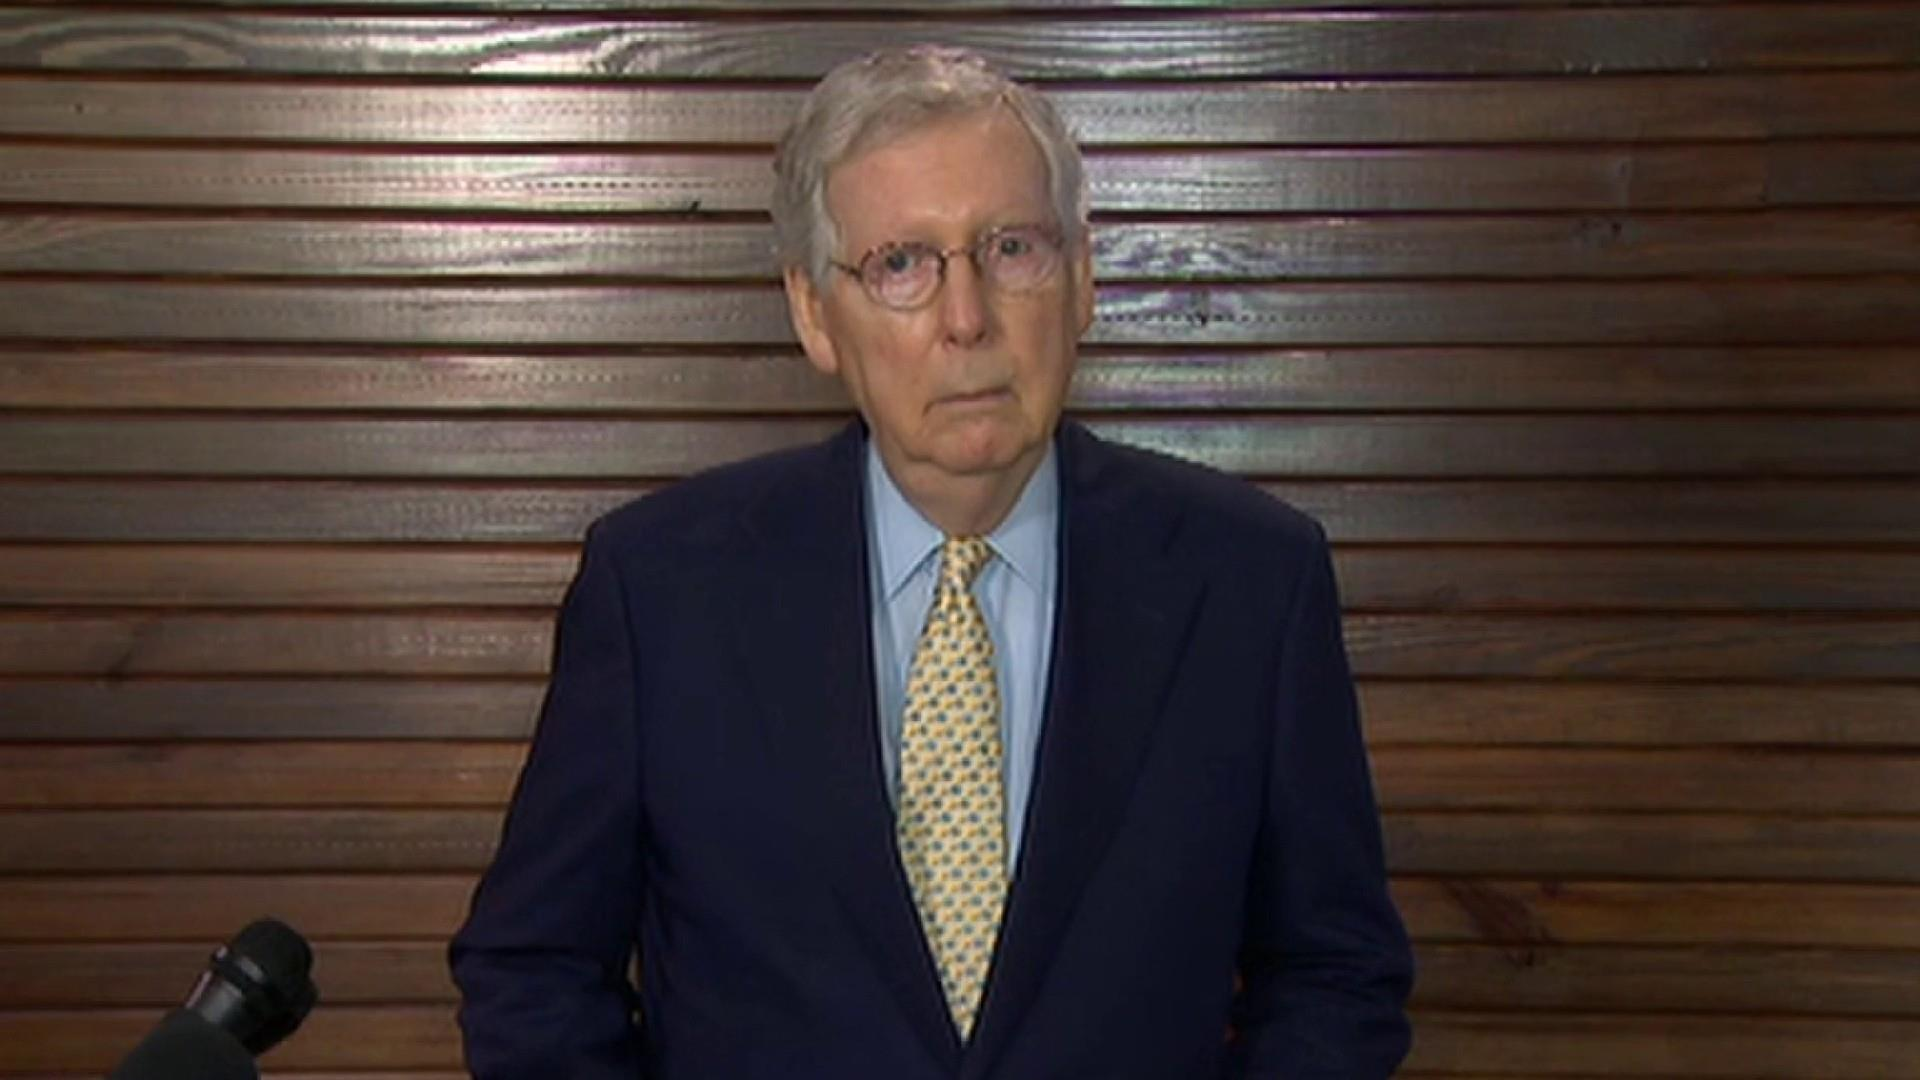 Why is Mitch McConnell blocking bills to protect U.S. elections?